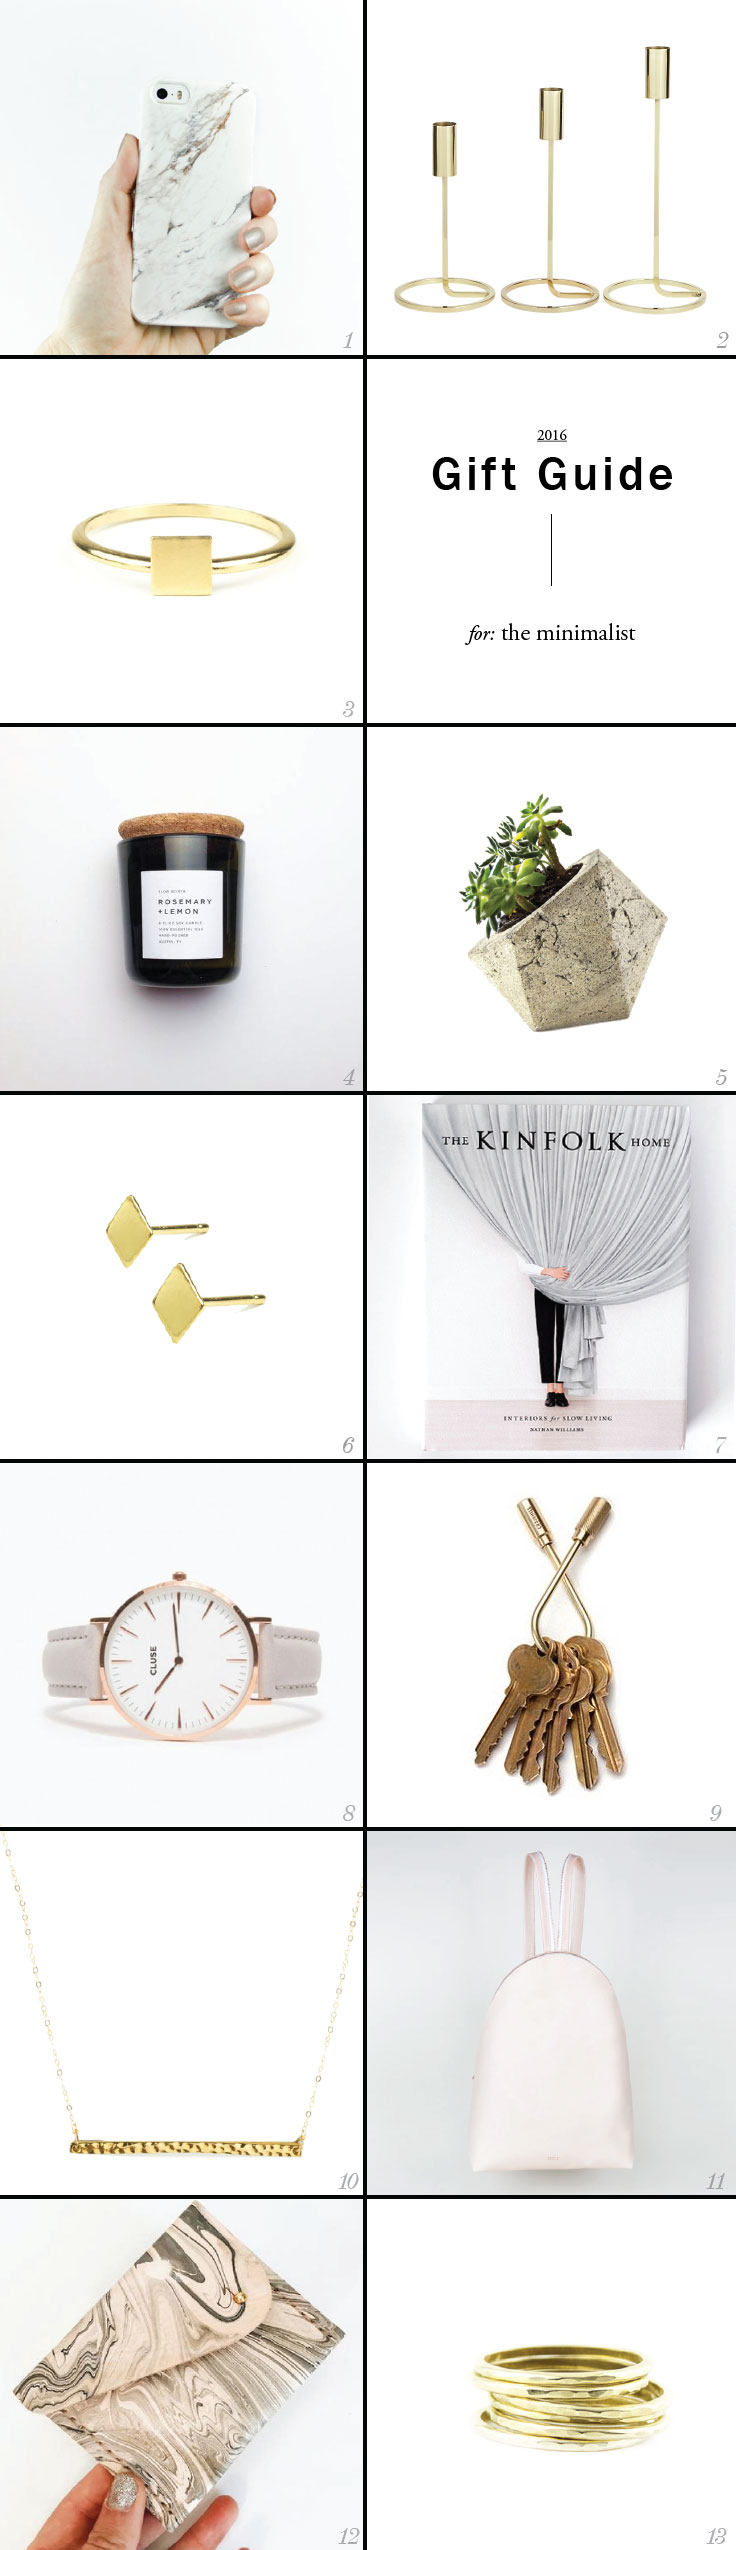 Gift-Guide-2016-For-her,-for-the-minimalist,-for-the-cool-girl.jpg